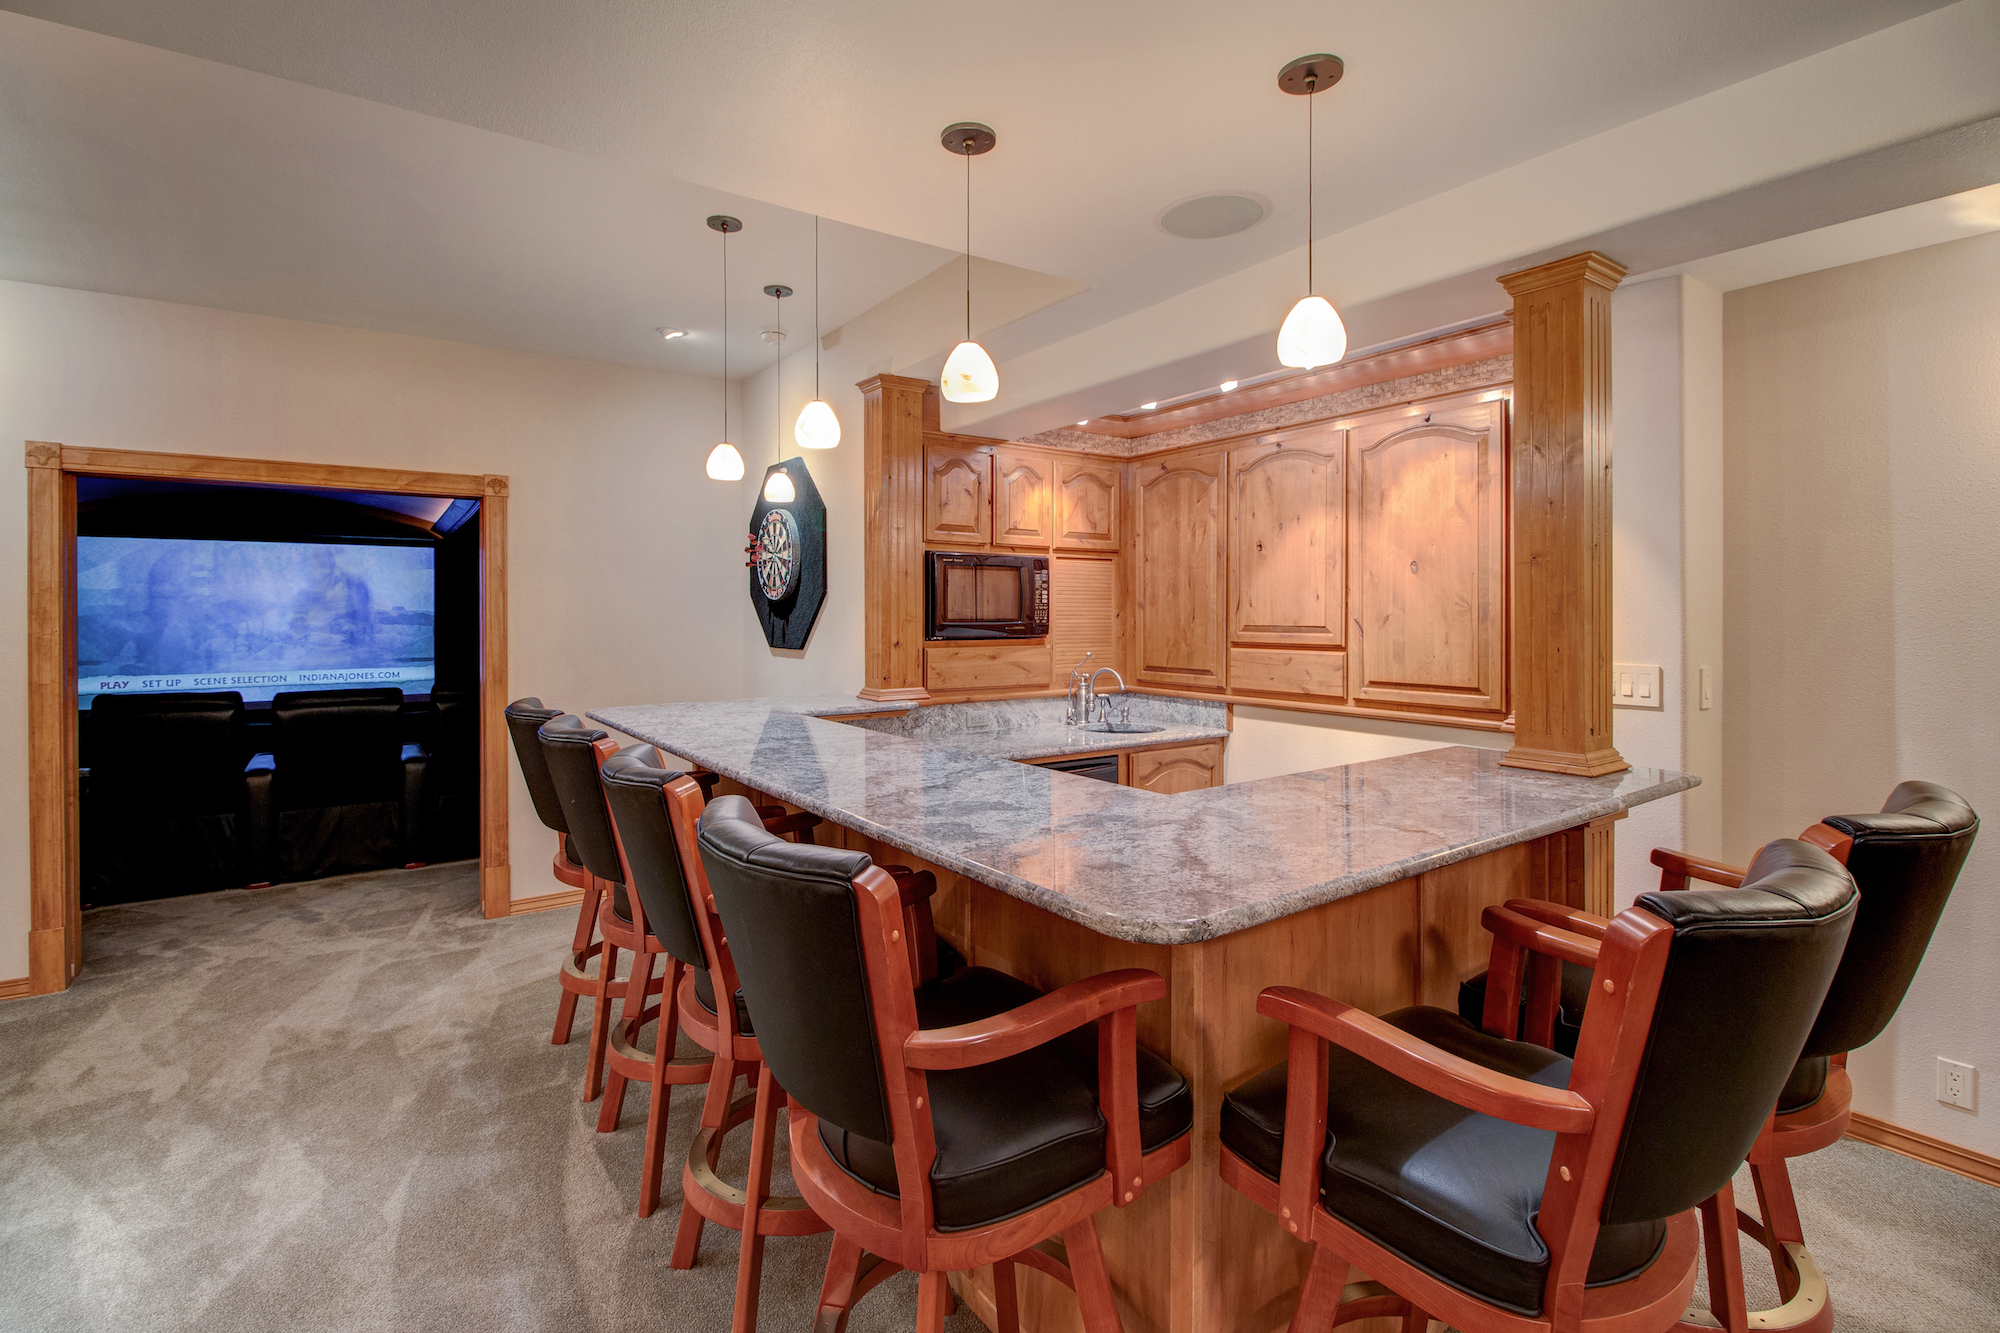 18-Wet bar in rec room has 2 under counter fridges w icemaker, dishwasher, trash compactor, and microwave.jpg